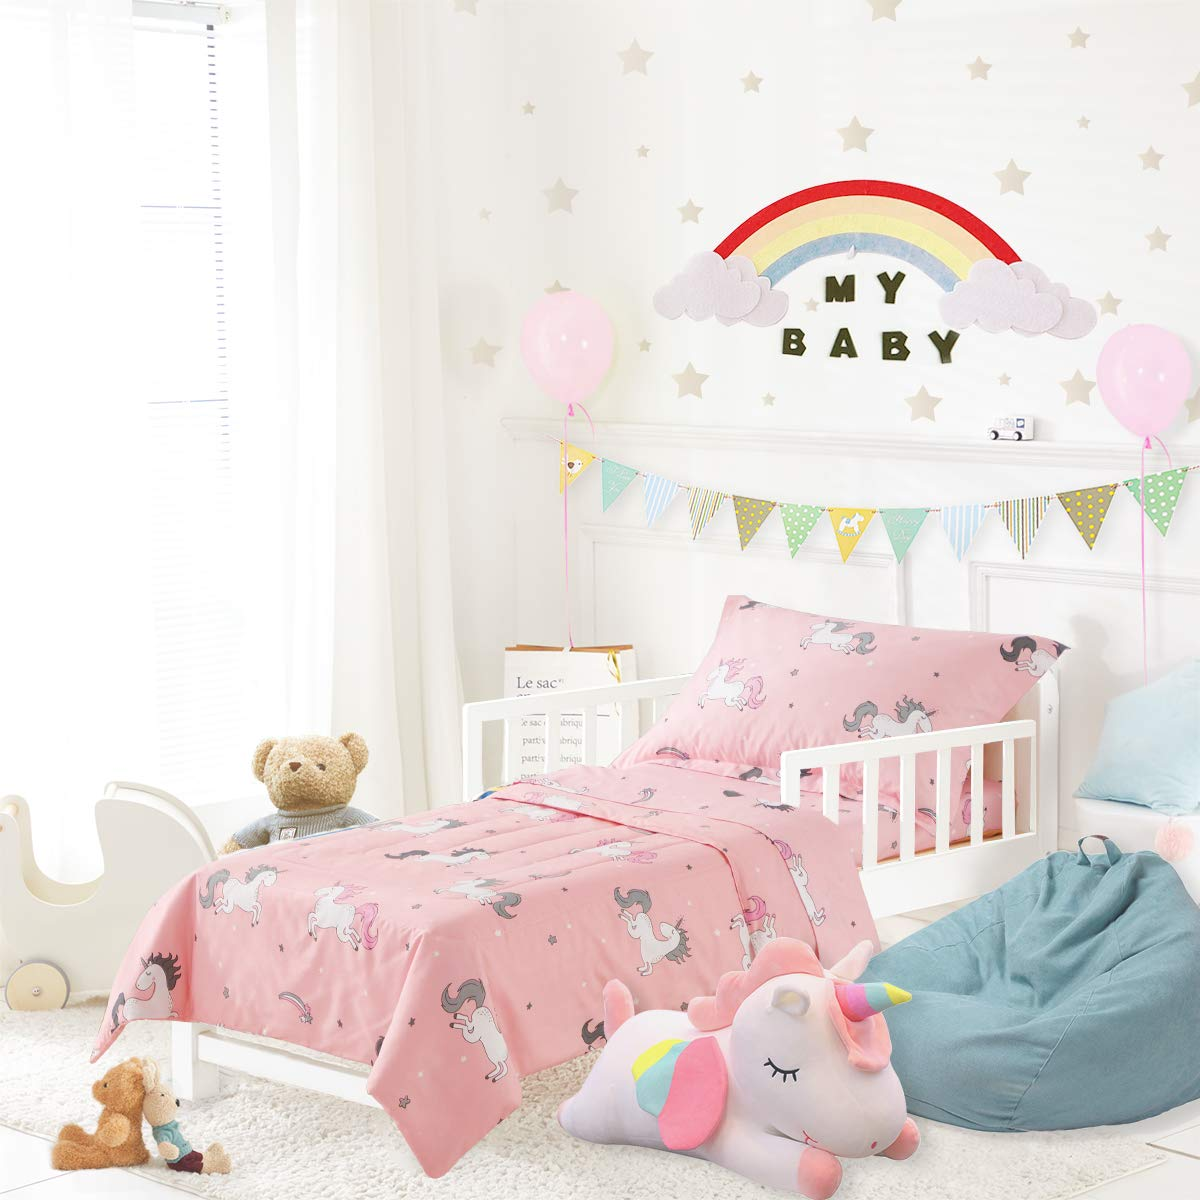 Amazon Com Uozzi Bedding Unicorn 4 Pieces Toddler Bedding Set With Colorful Rainbow Stars Pink Cute Girls Toddler Bed Comforter Sheet Set And Pillowcases Kitchen Dining